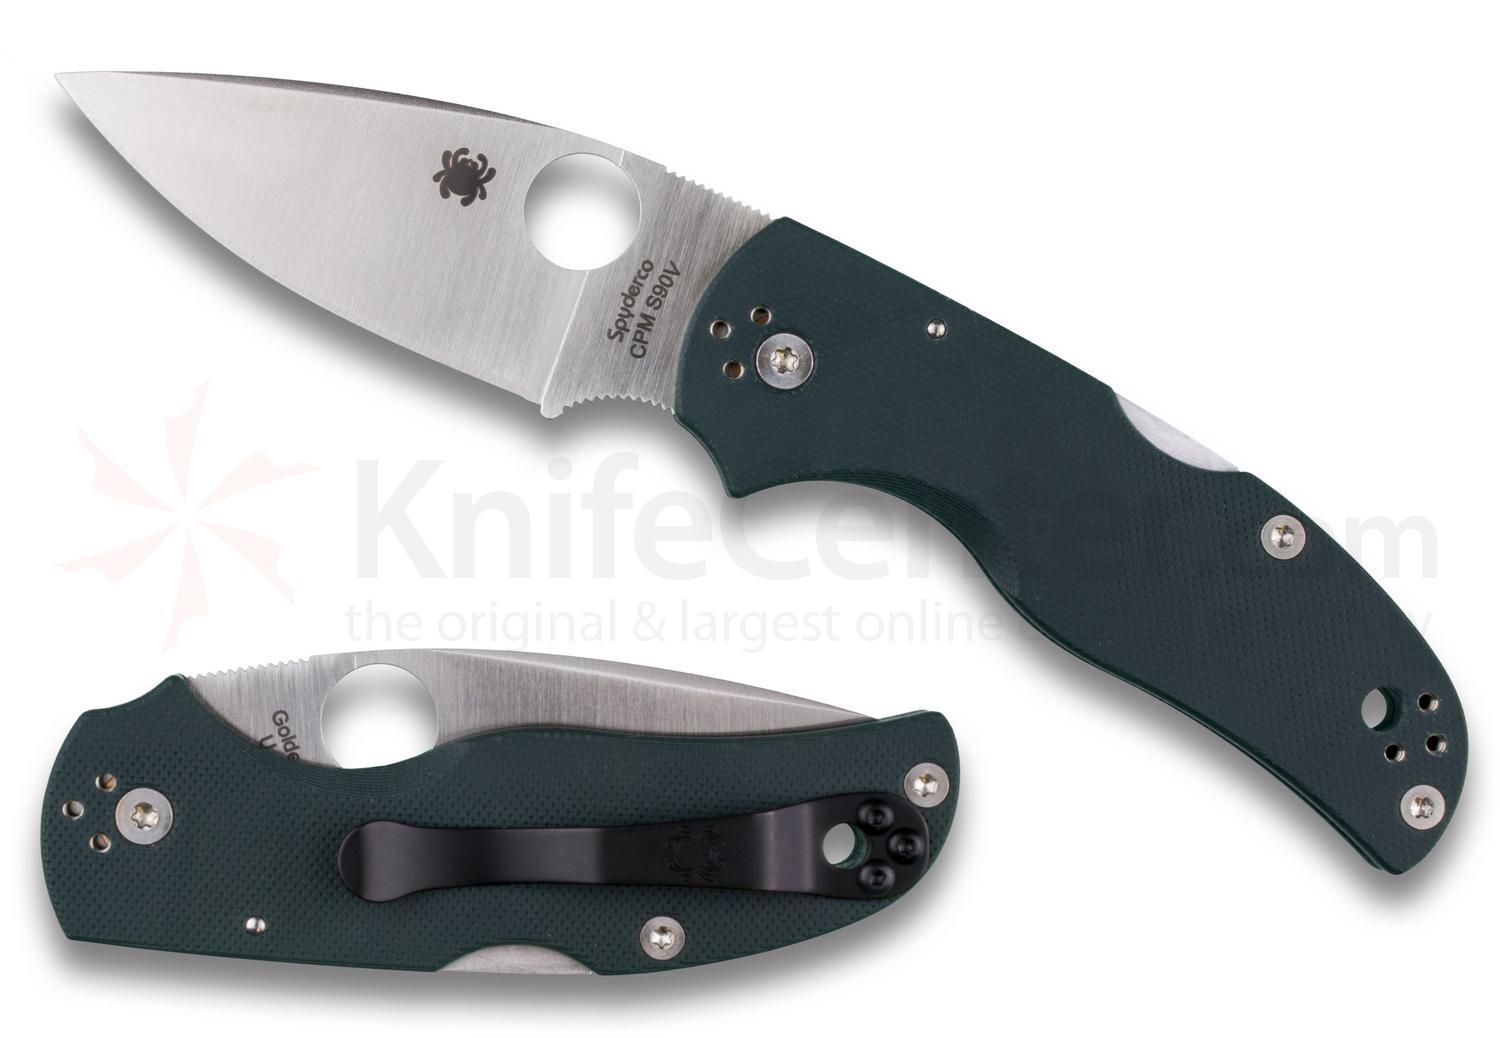 Spyderco C41GPFGR5 Native 5 Folding Knife 2.95 inch S90V Satin Plain Blade, Forest Green G10 Handles, KnifeCenter Exclusive